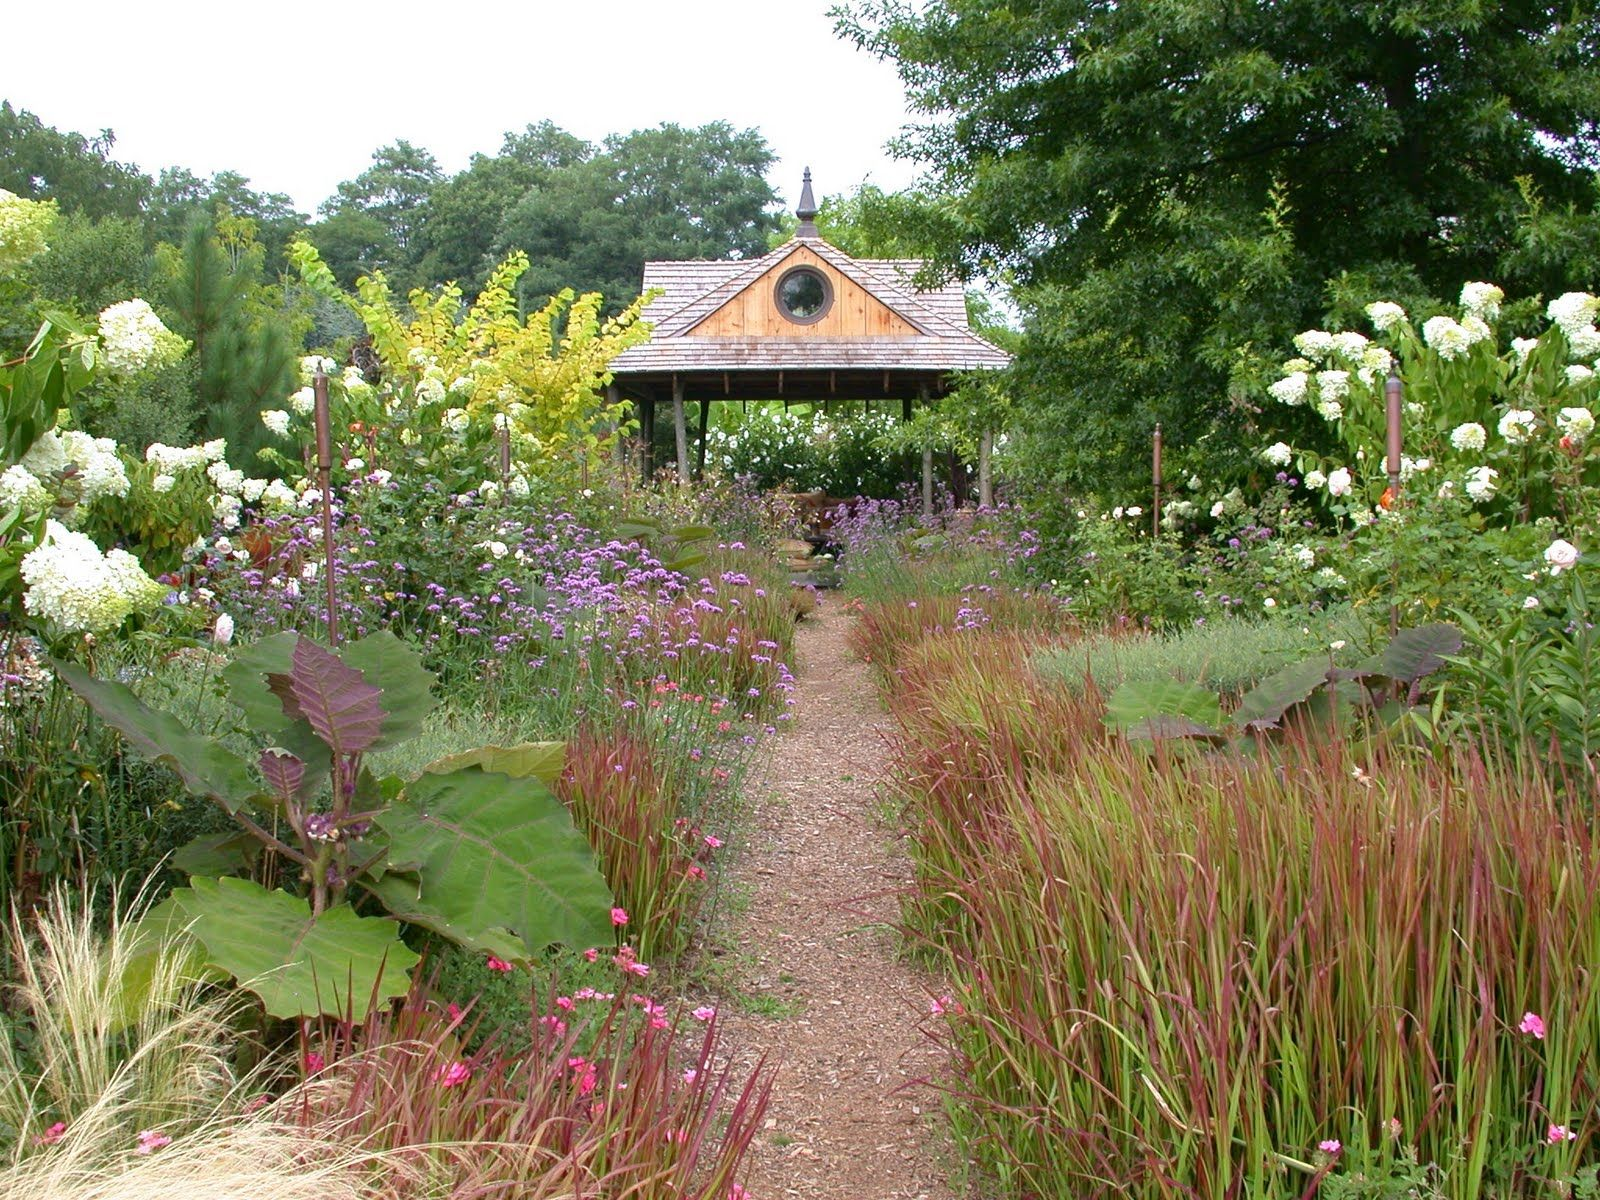 Peaceful garden grounded design by Thomas Rainer